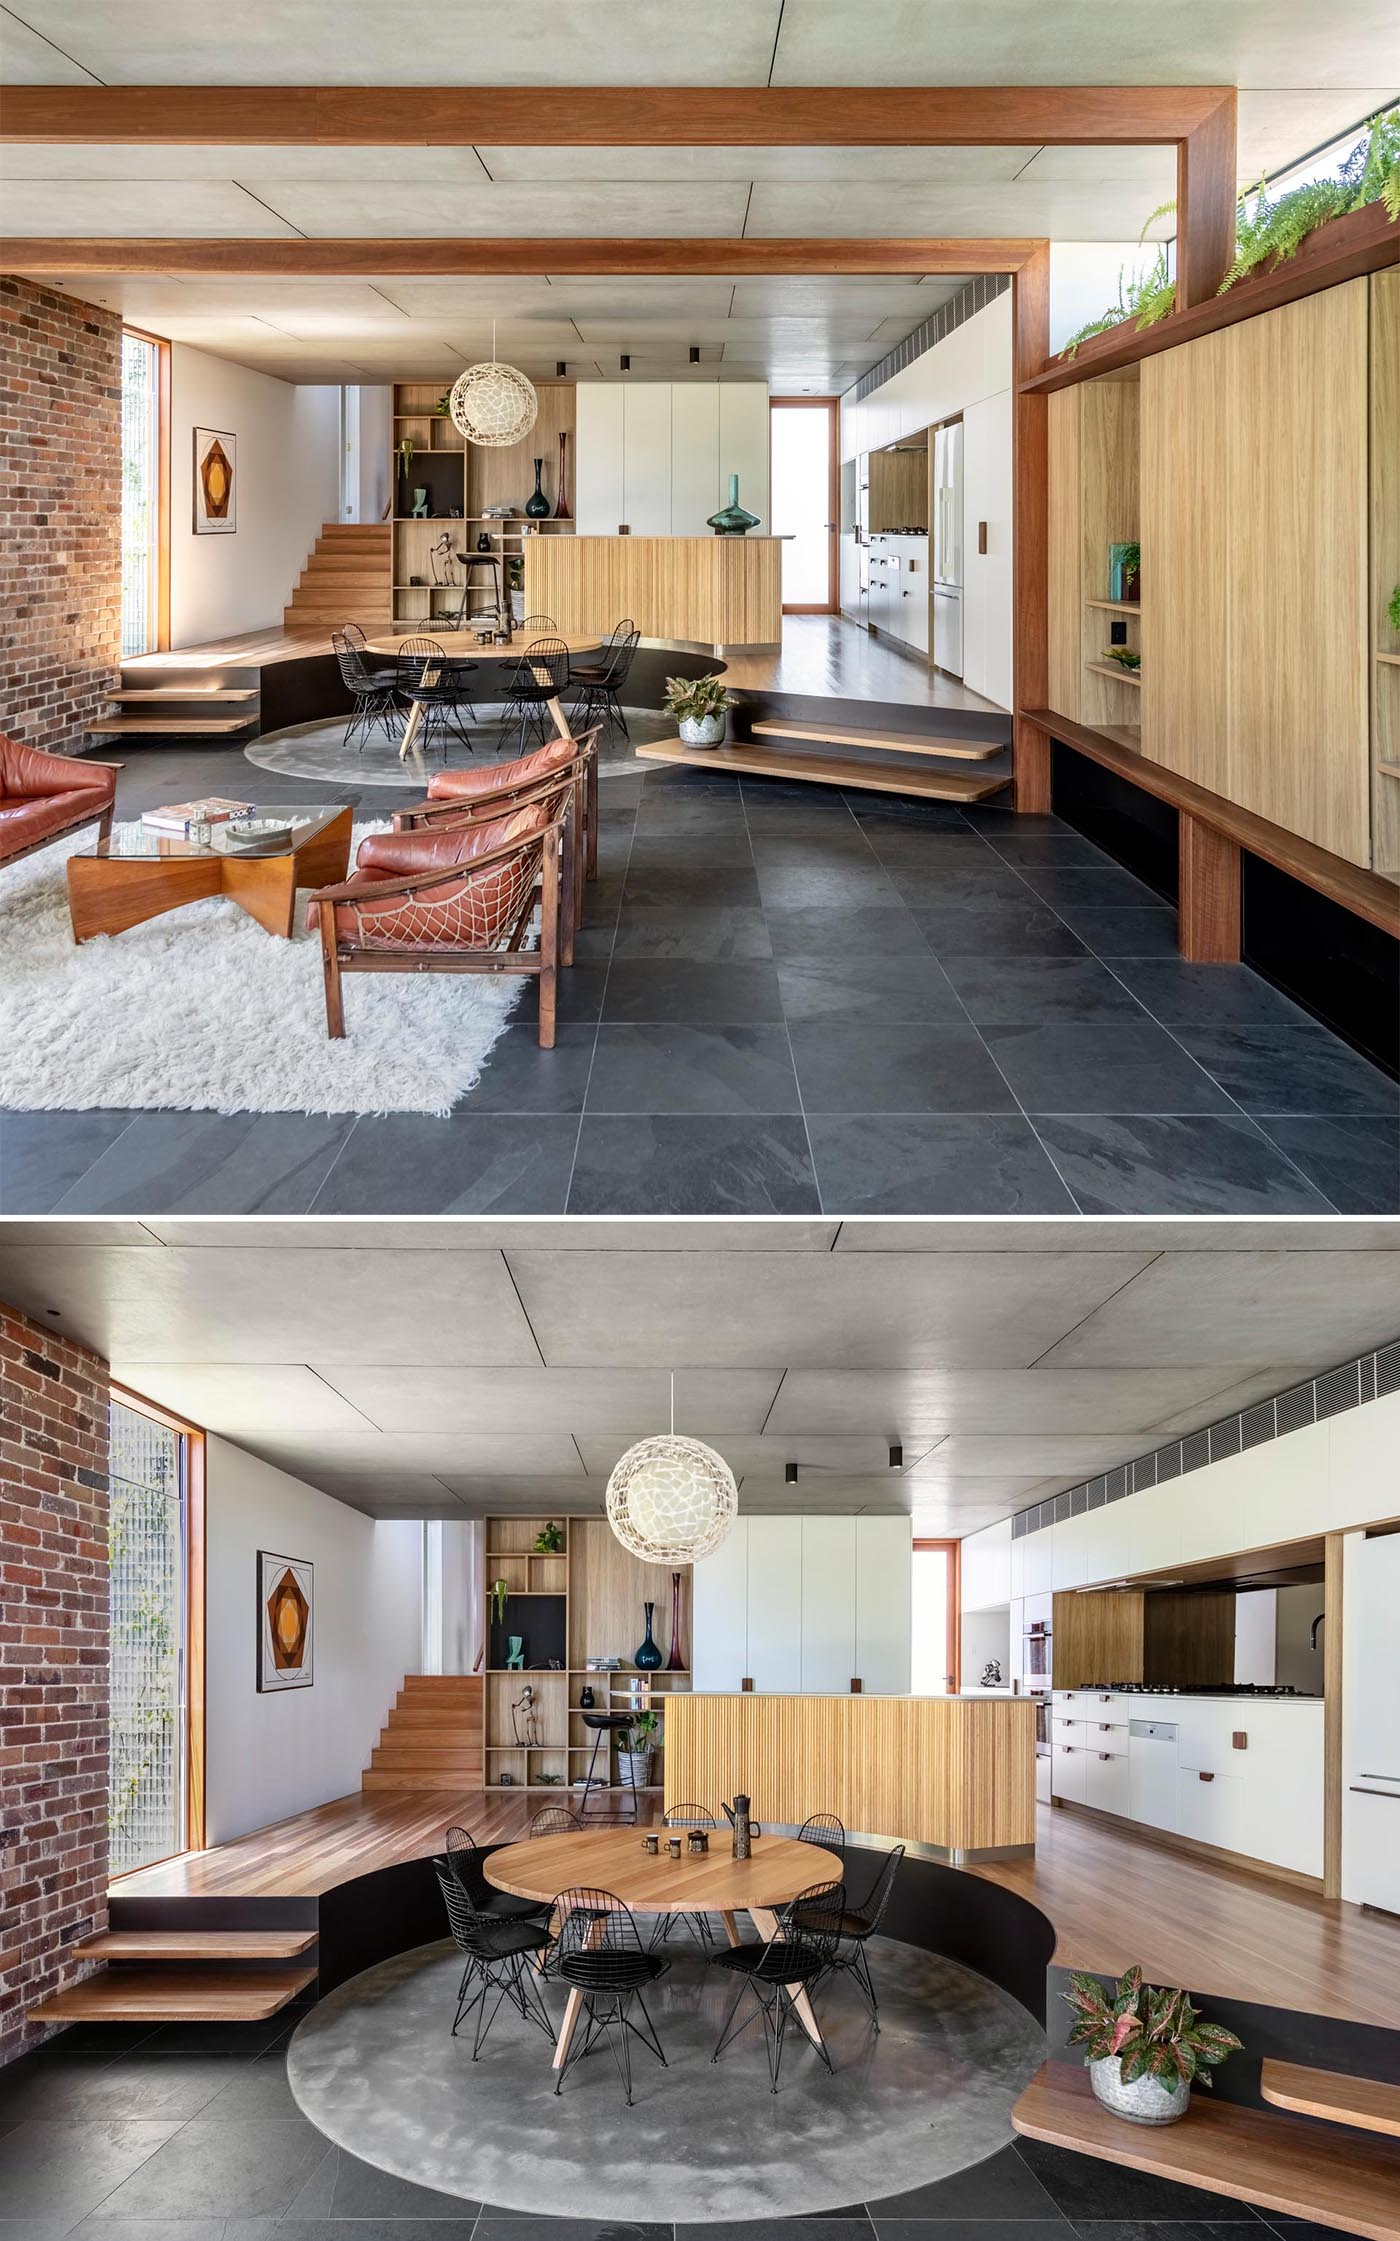 Behind the living room in this modern addition is the dining area, with a round wood table that sits upon a round rug.